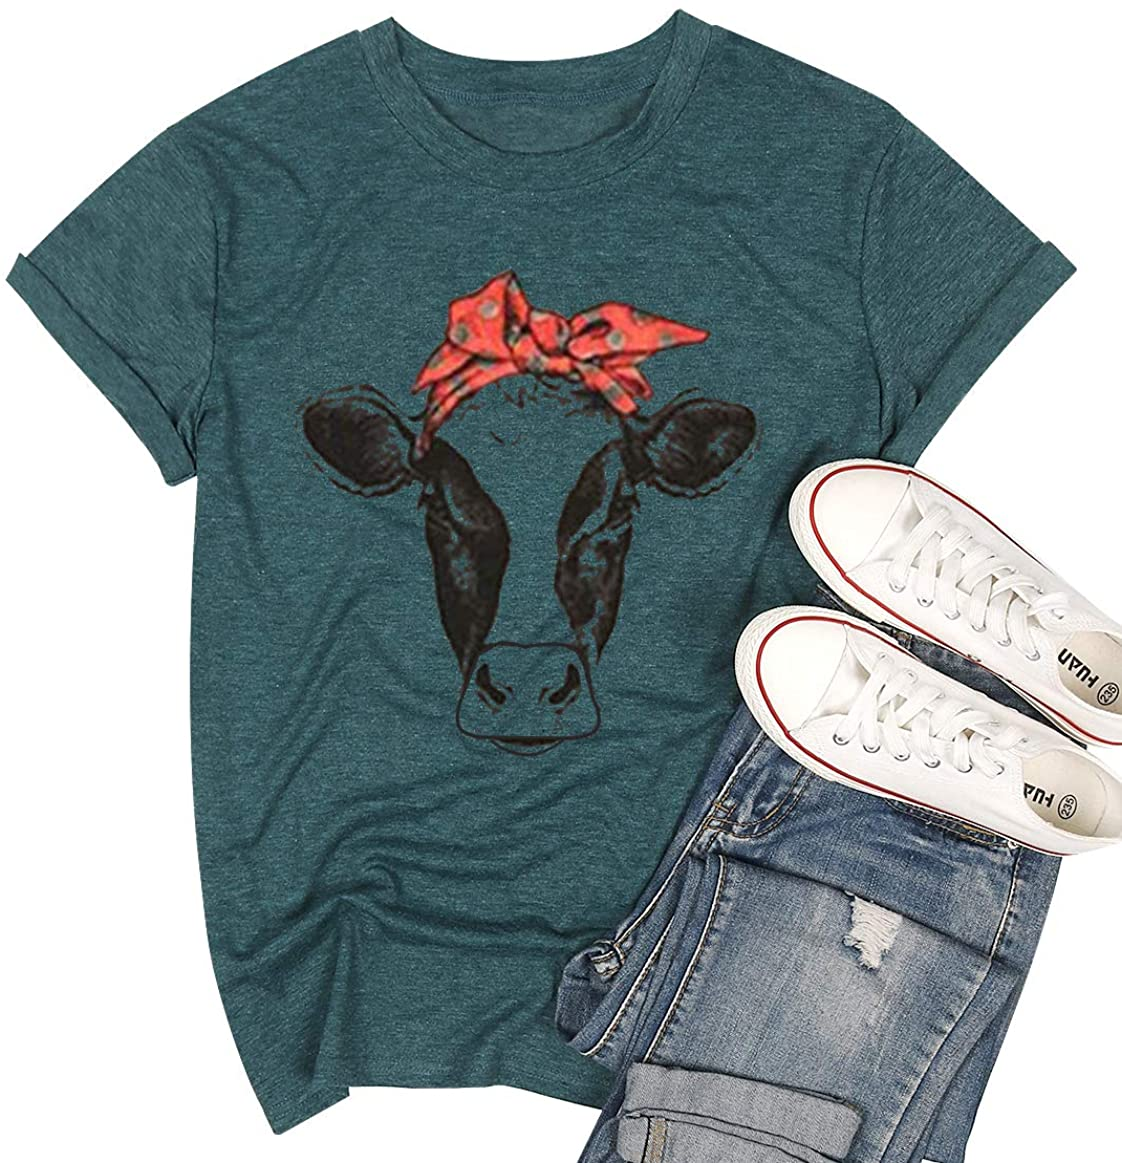 Cow Shirt Women Funny Cute Printed Graphic Tee Summer Loose Casual Short Sleeve Tops…